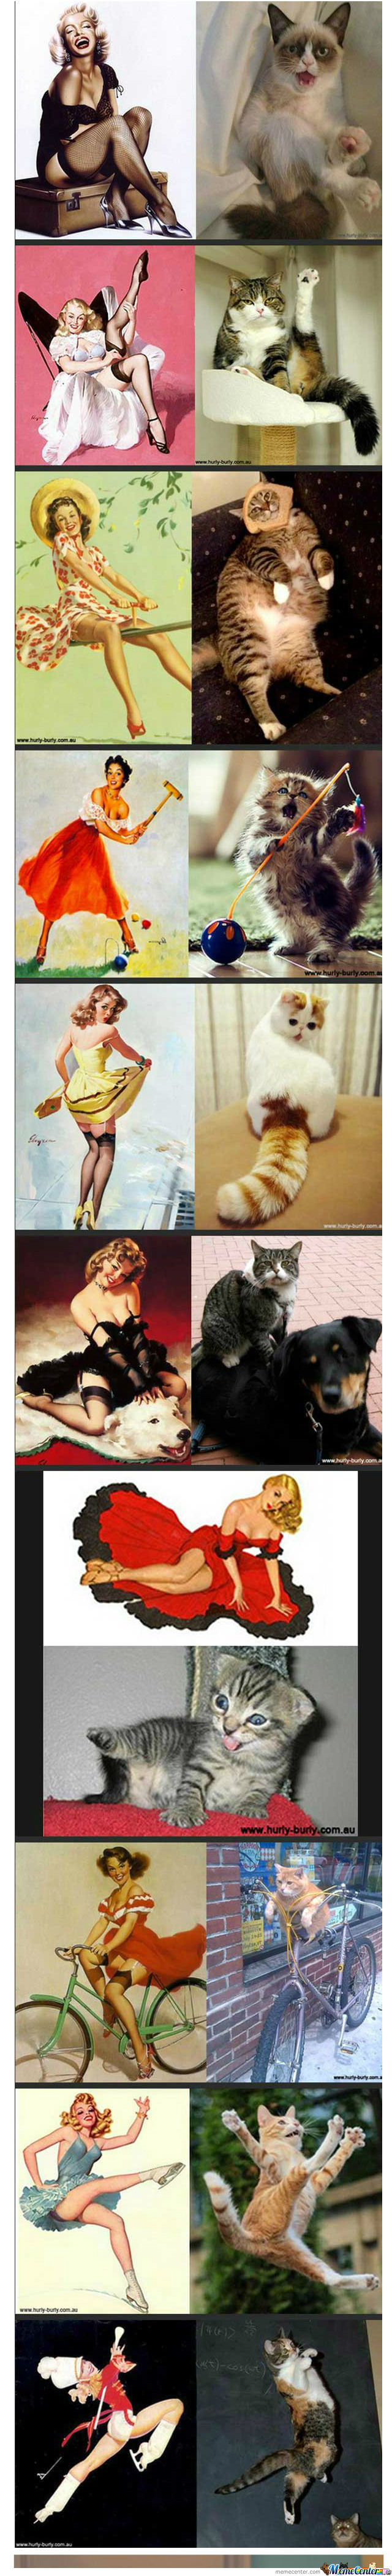 [RMX] vintage photos and cats